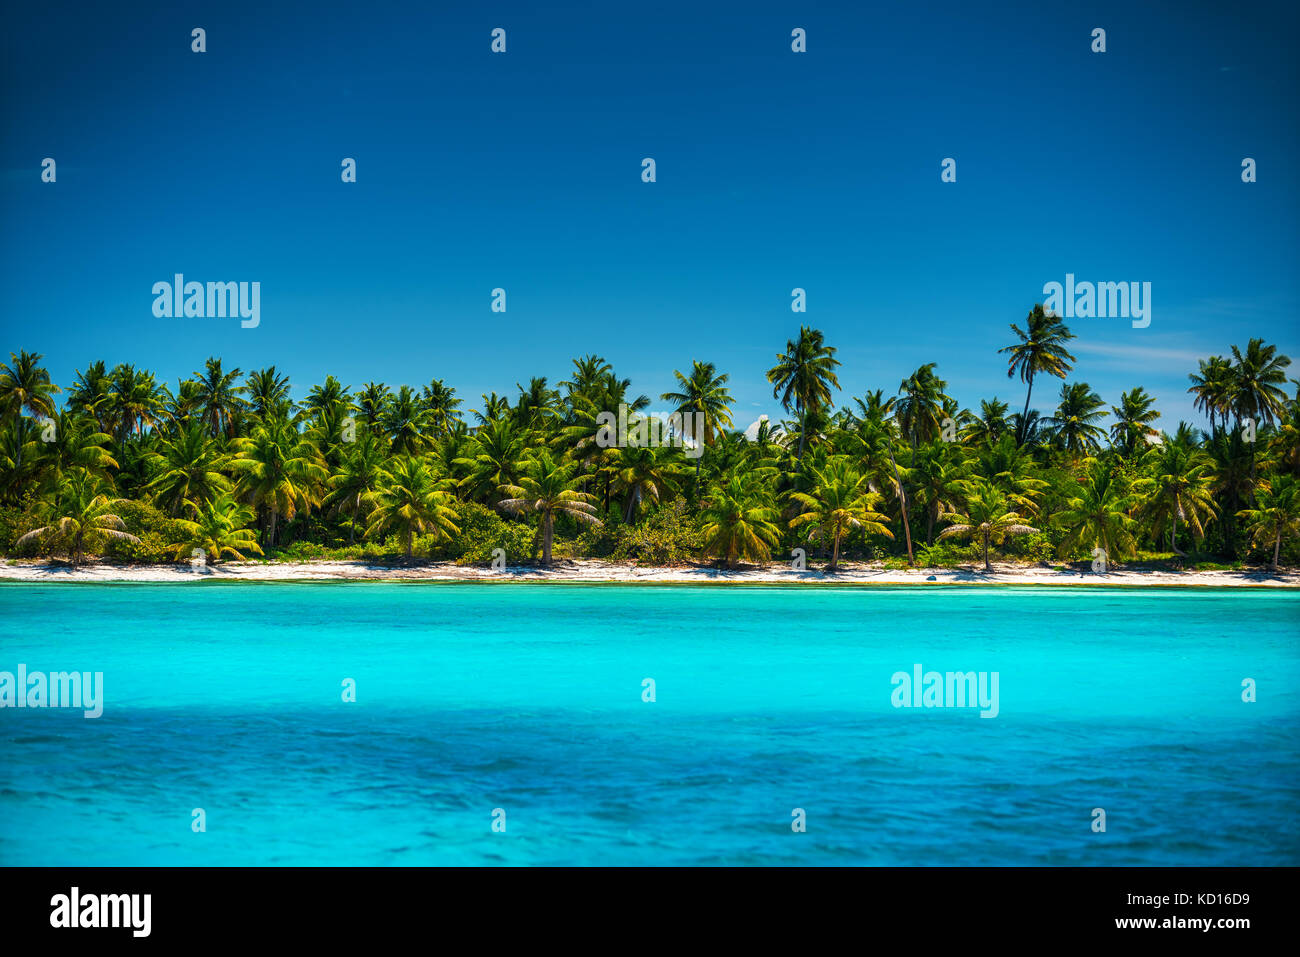 Palm trees on the tropical beach, Dominican Republic - Stock Image